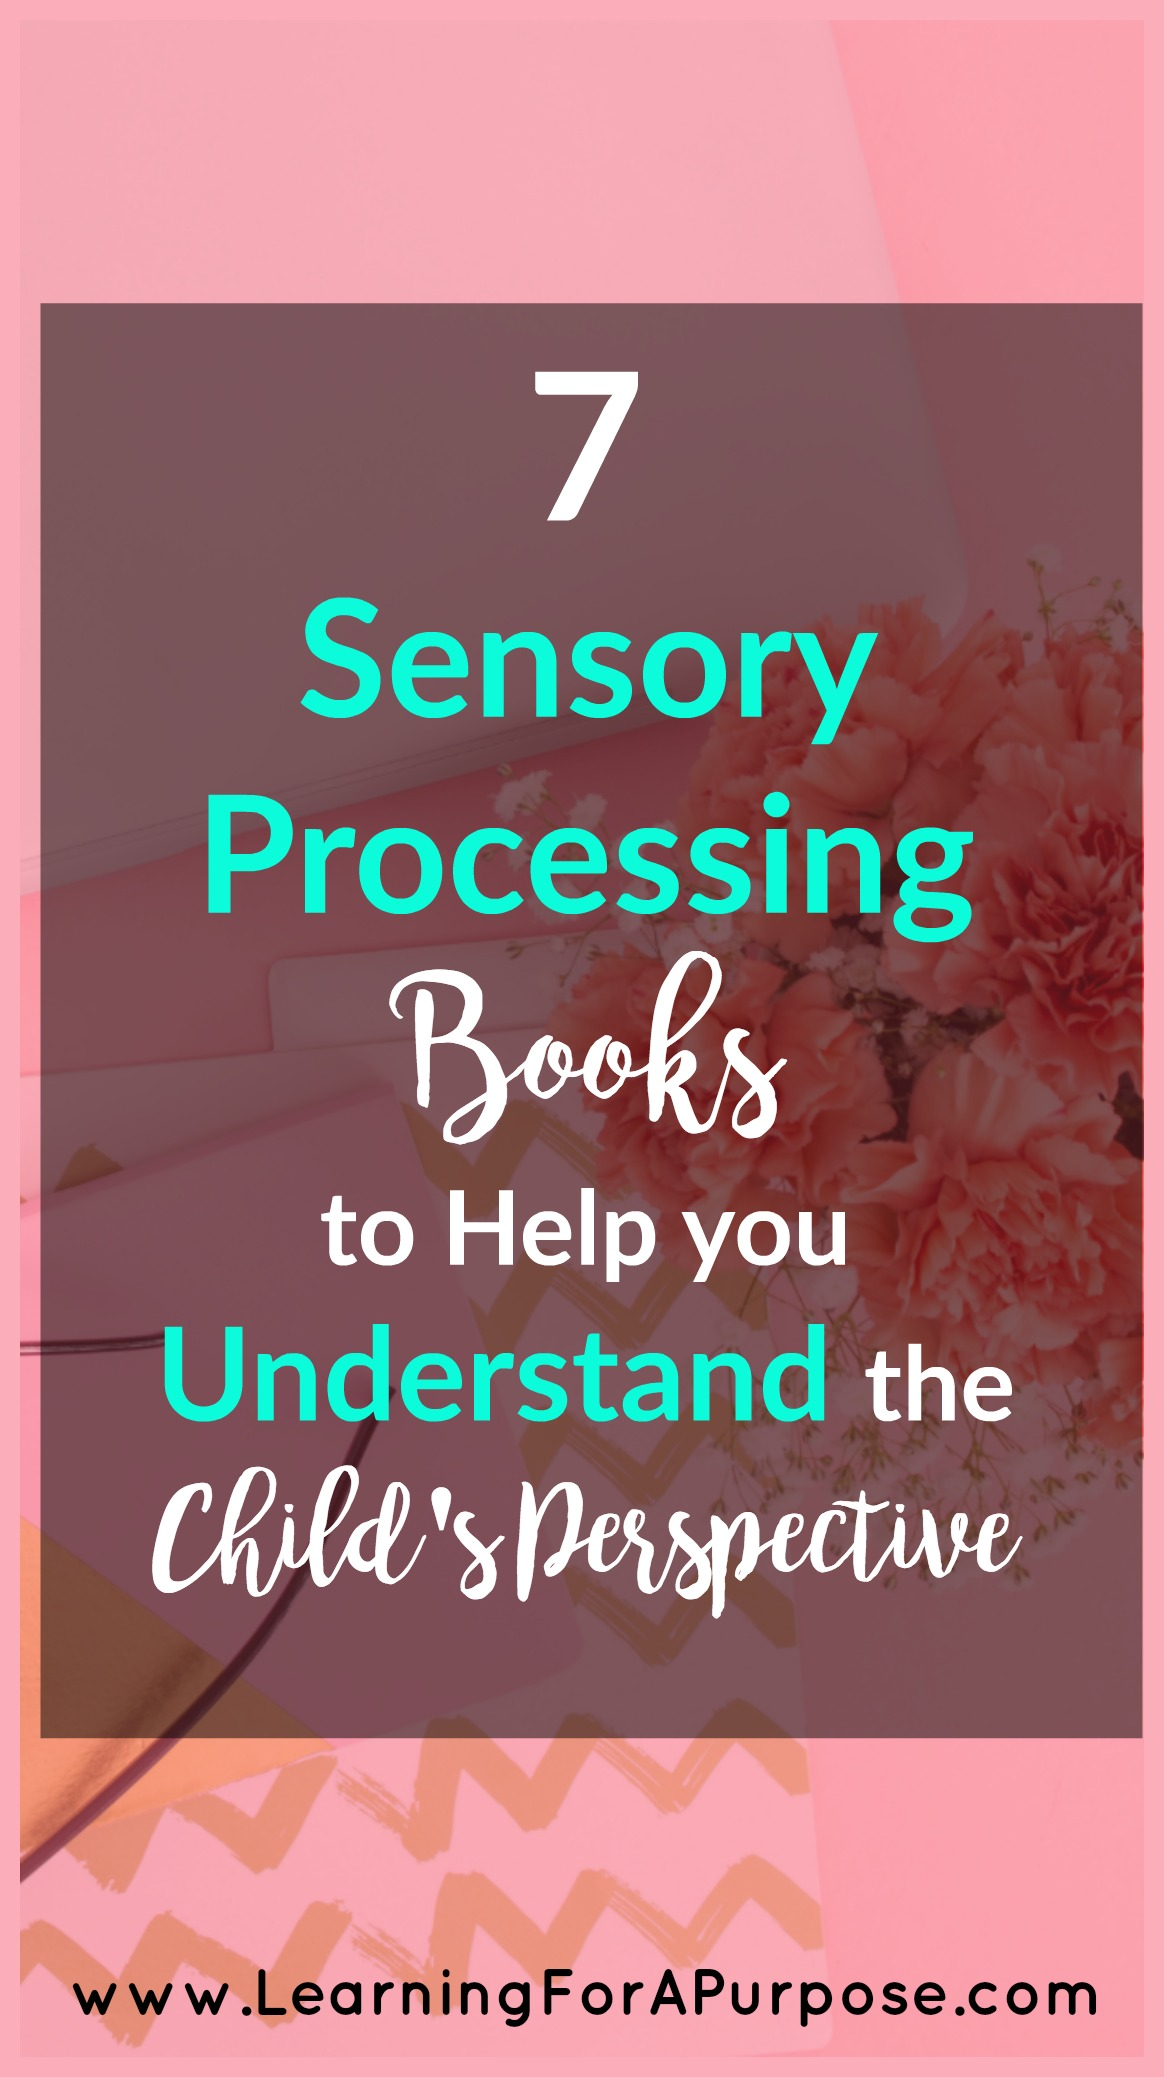 7 Sensory Processing Books To help you Understand the Child's Perspective